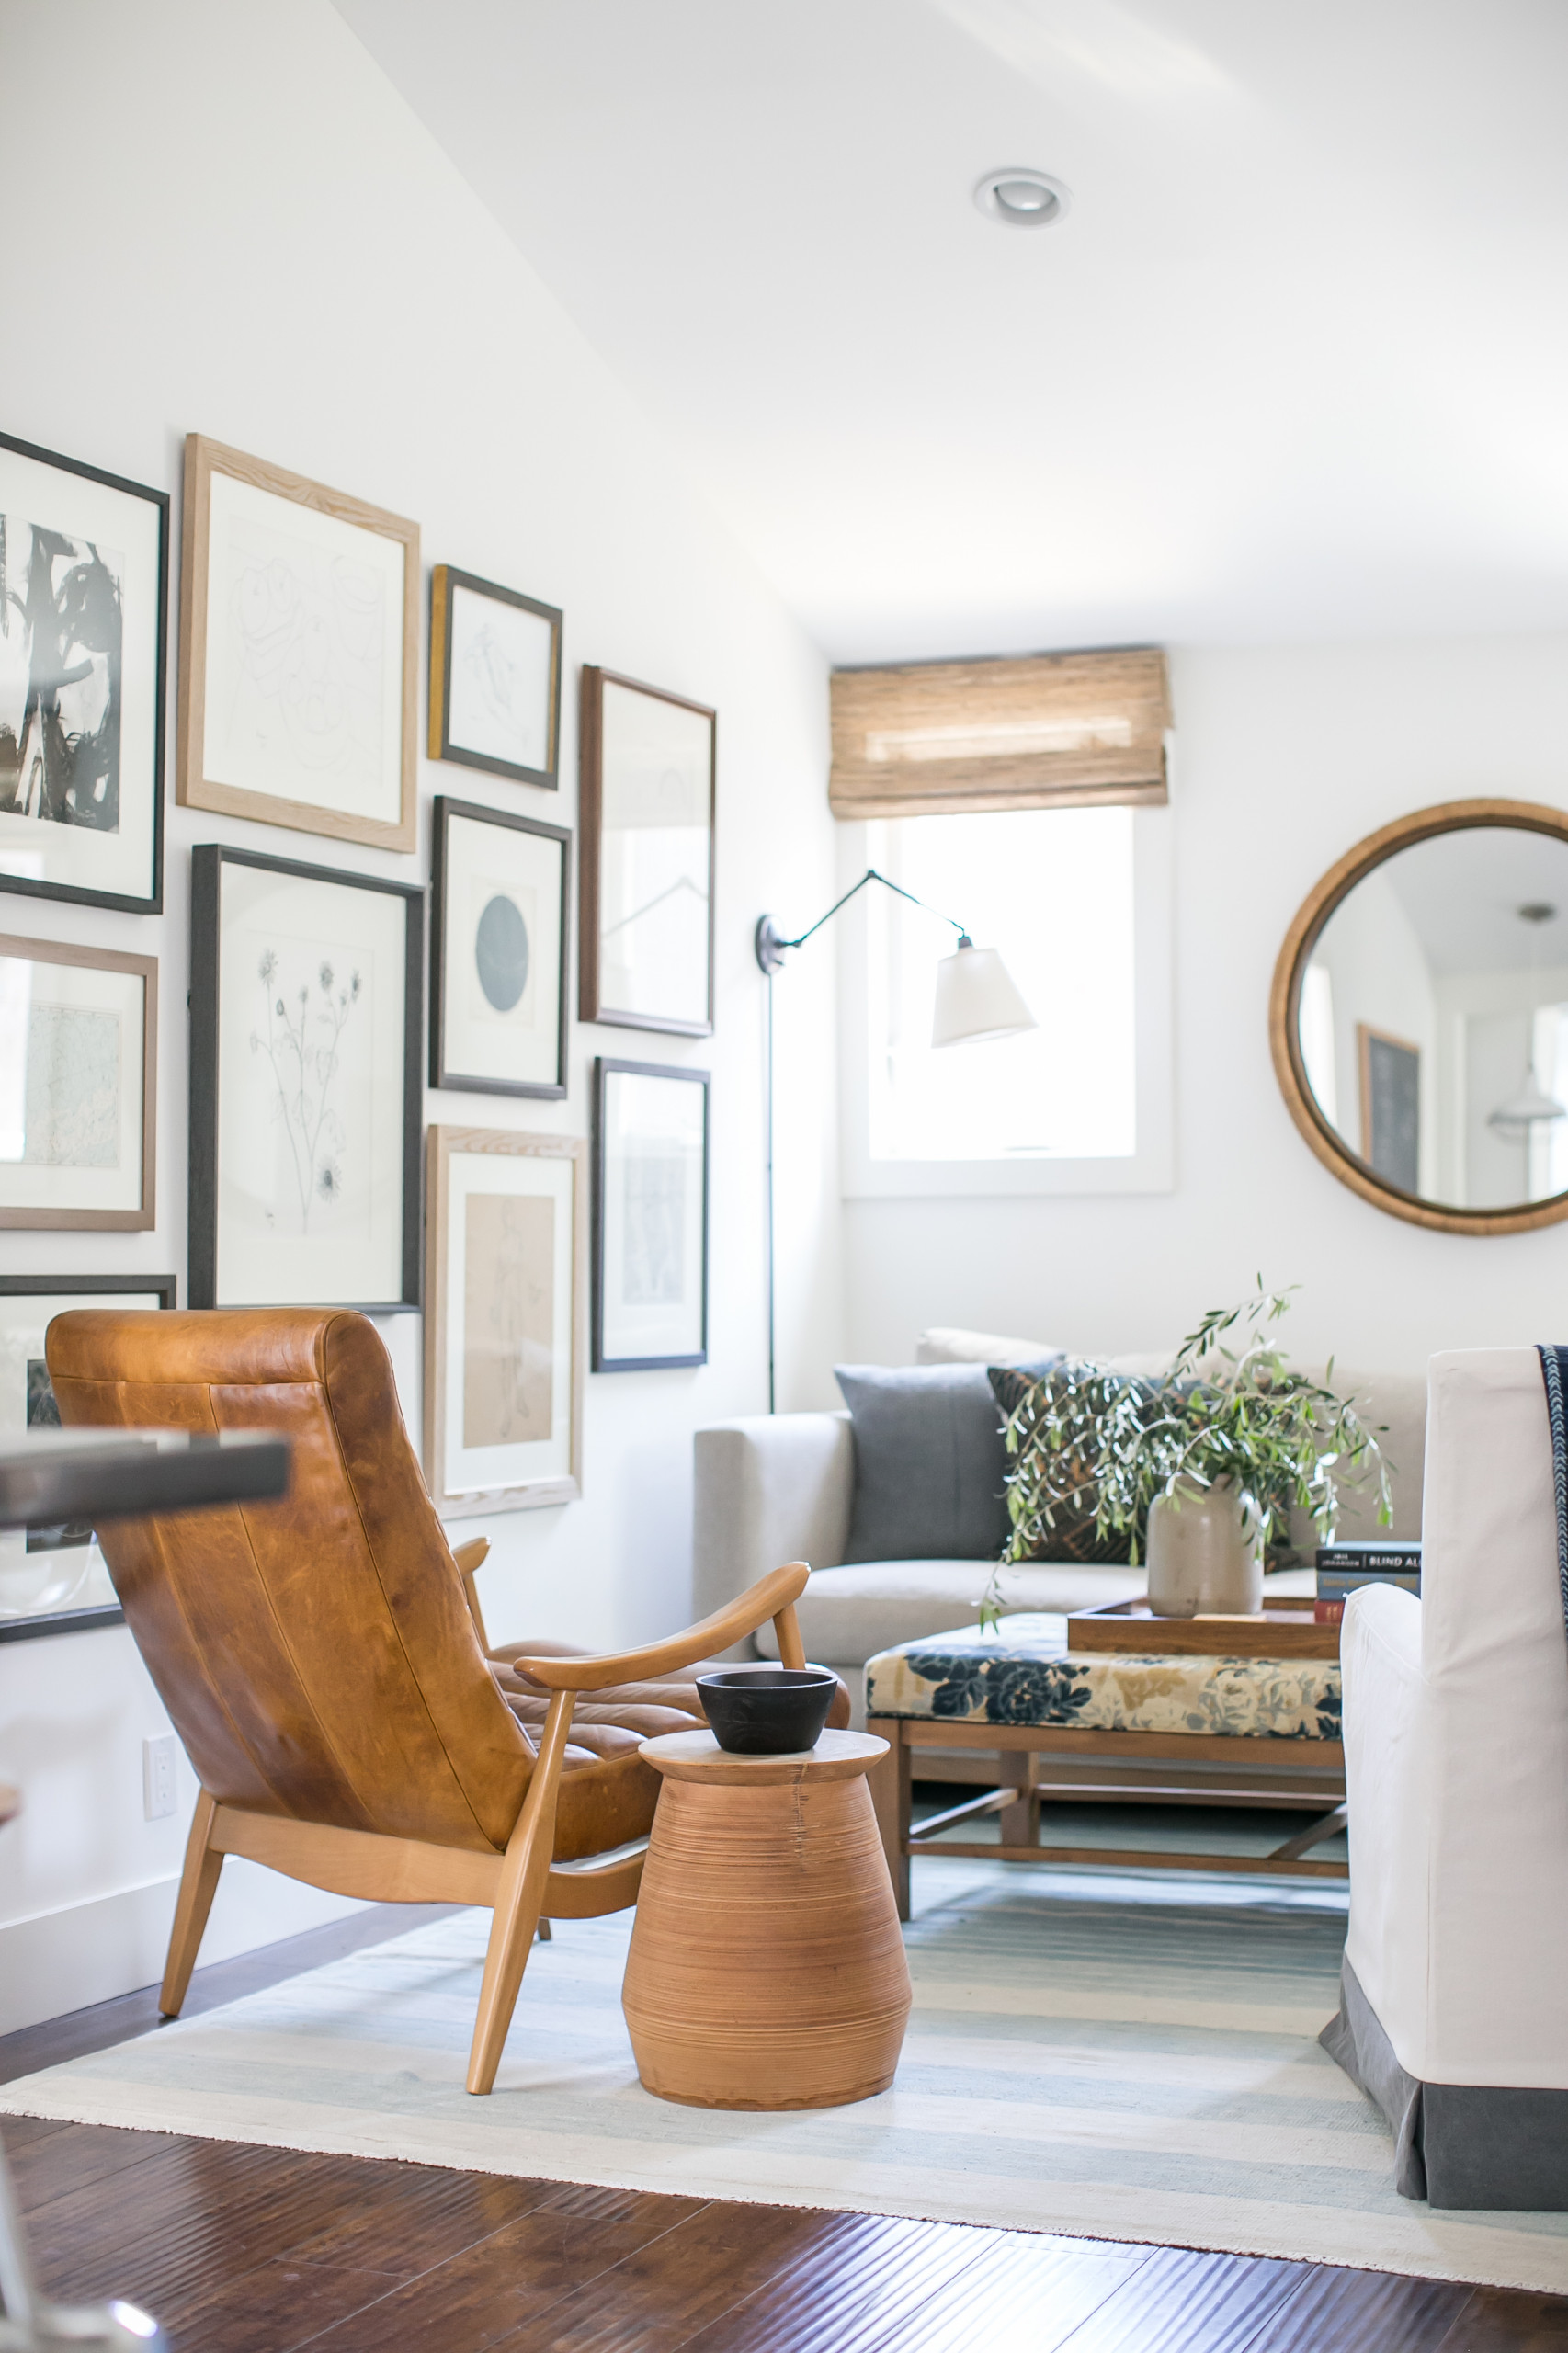 75 Beautiful Small Living Room Pictures Ideas January 2021 Houzz